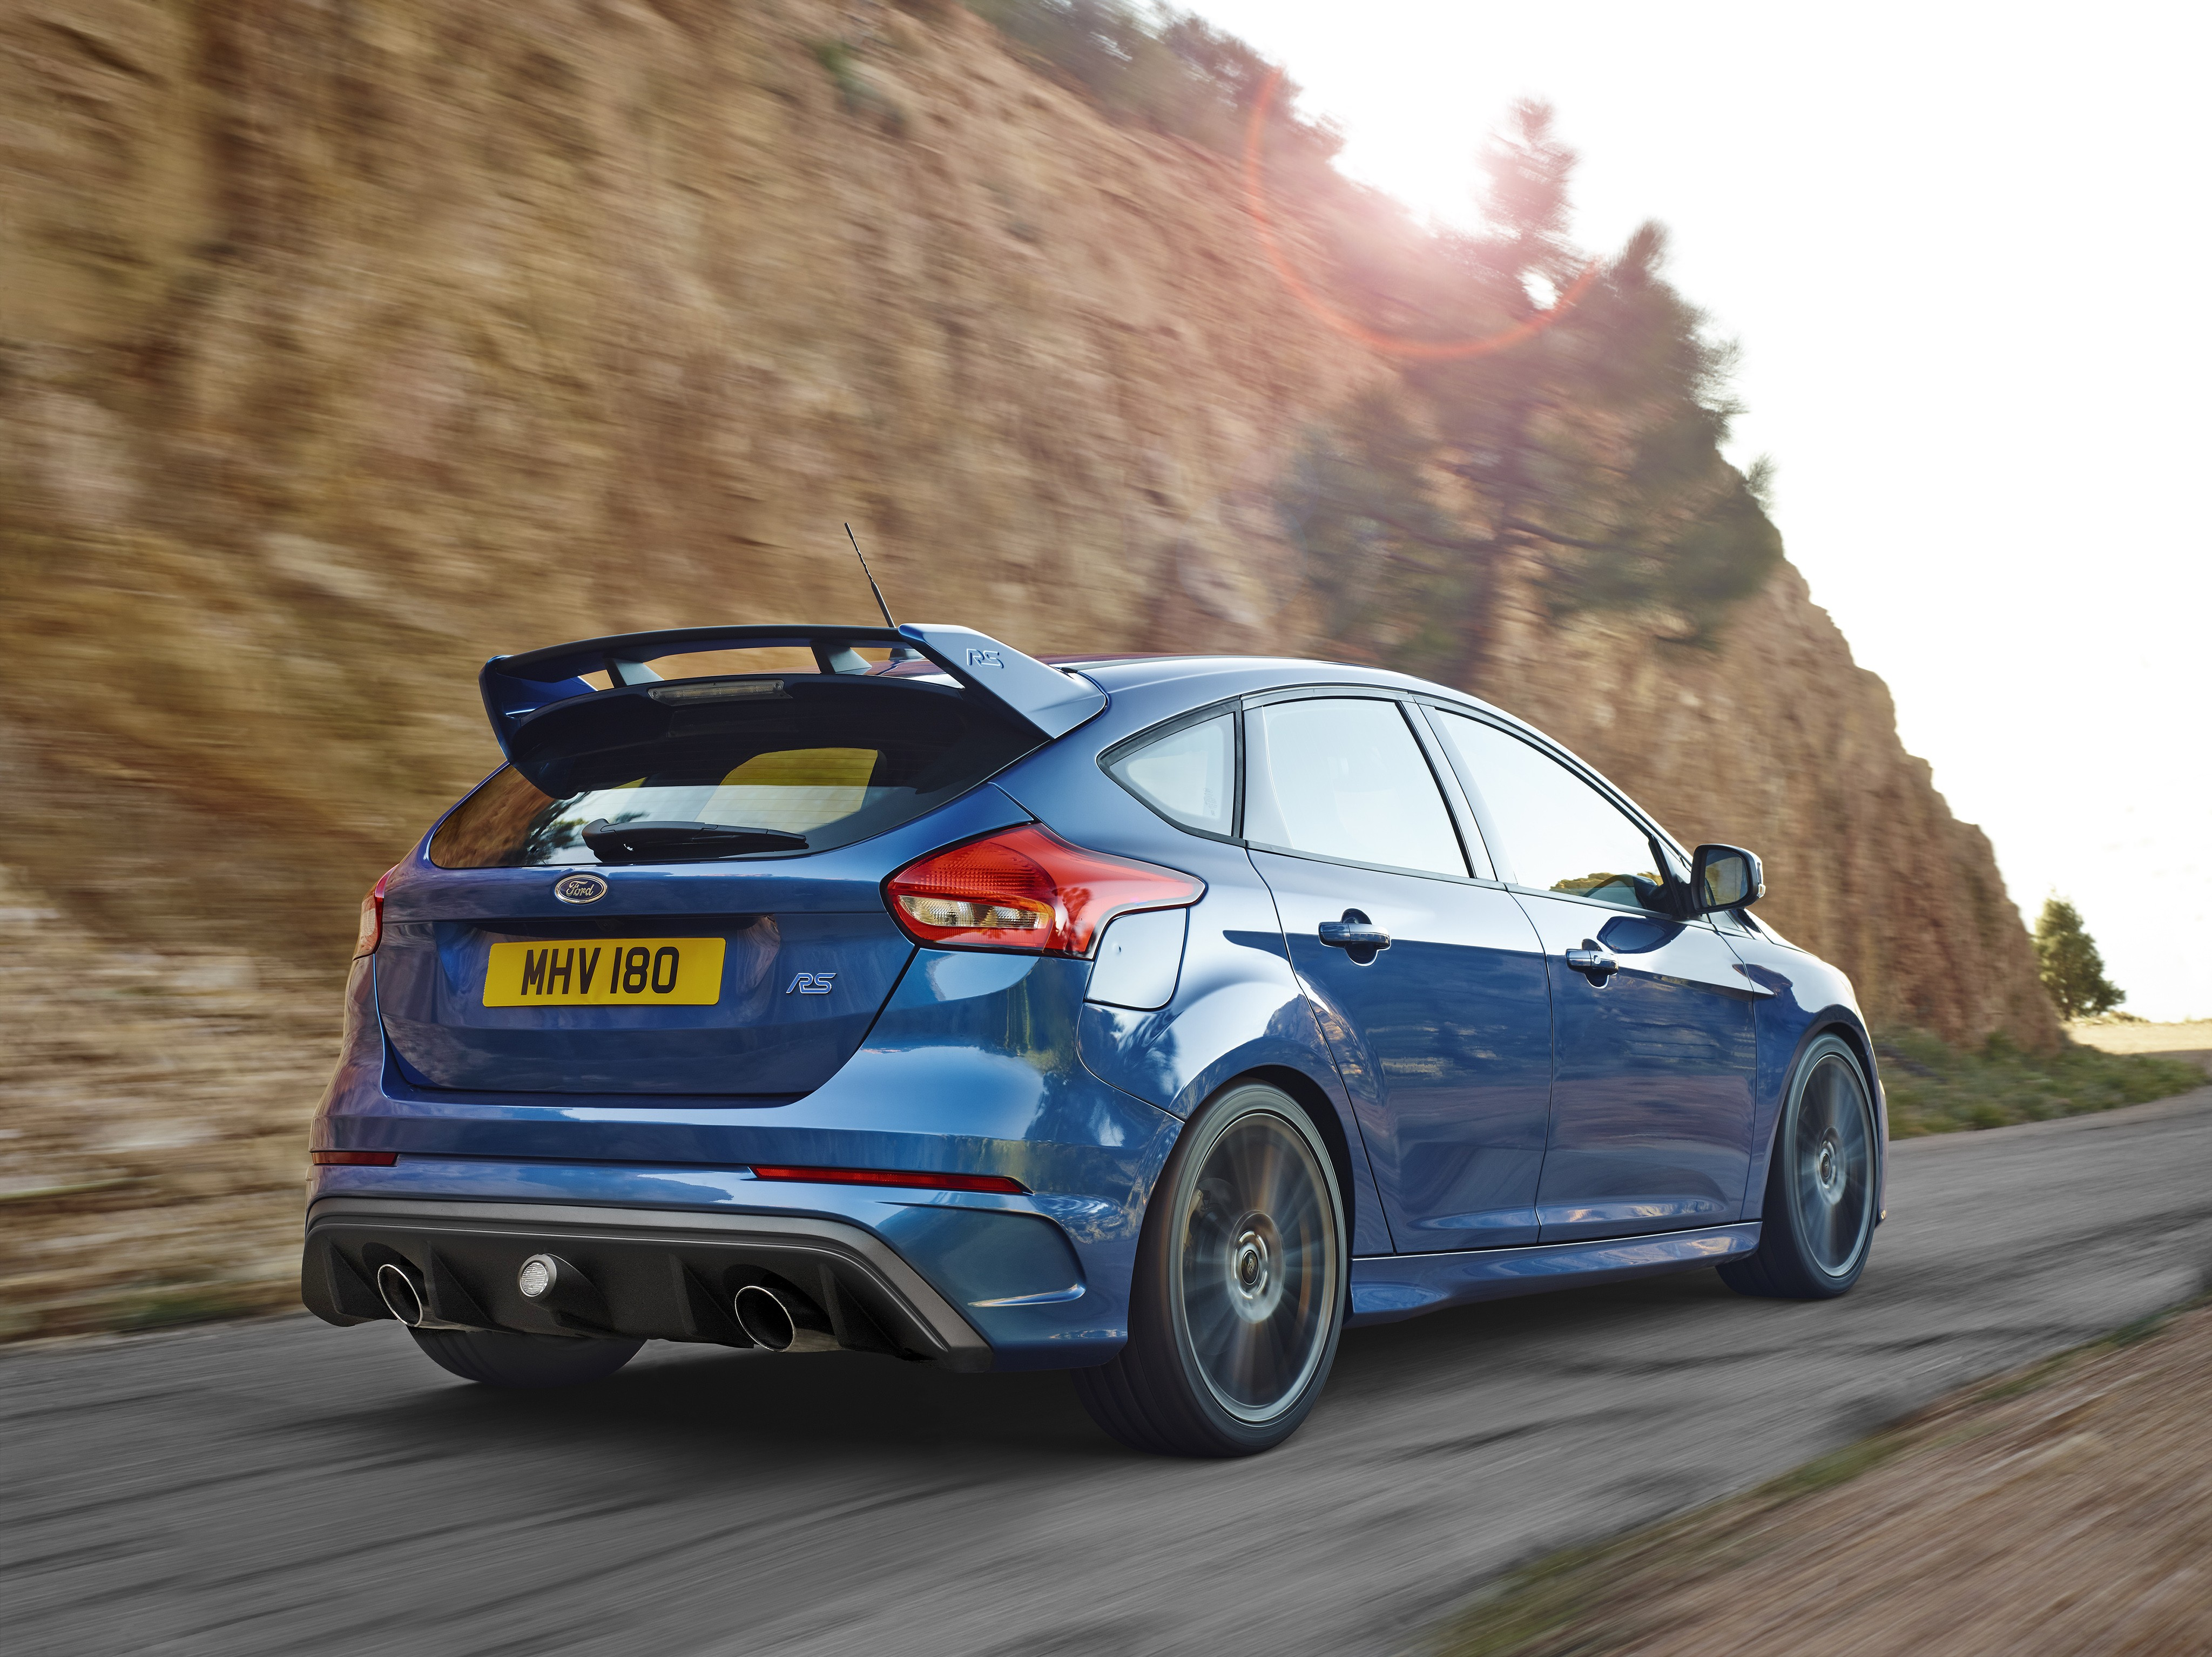 ford focus rs specs   photos 2016  2017  2018  2019 ford focus rs 2016 specifications 2016 ford focus rs performance specs